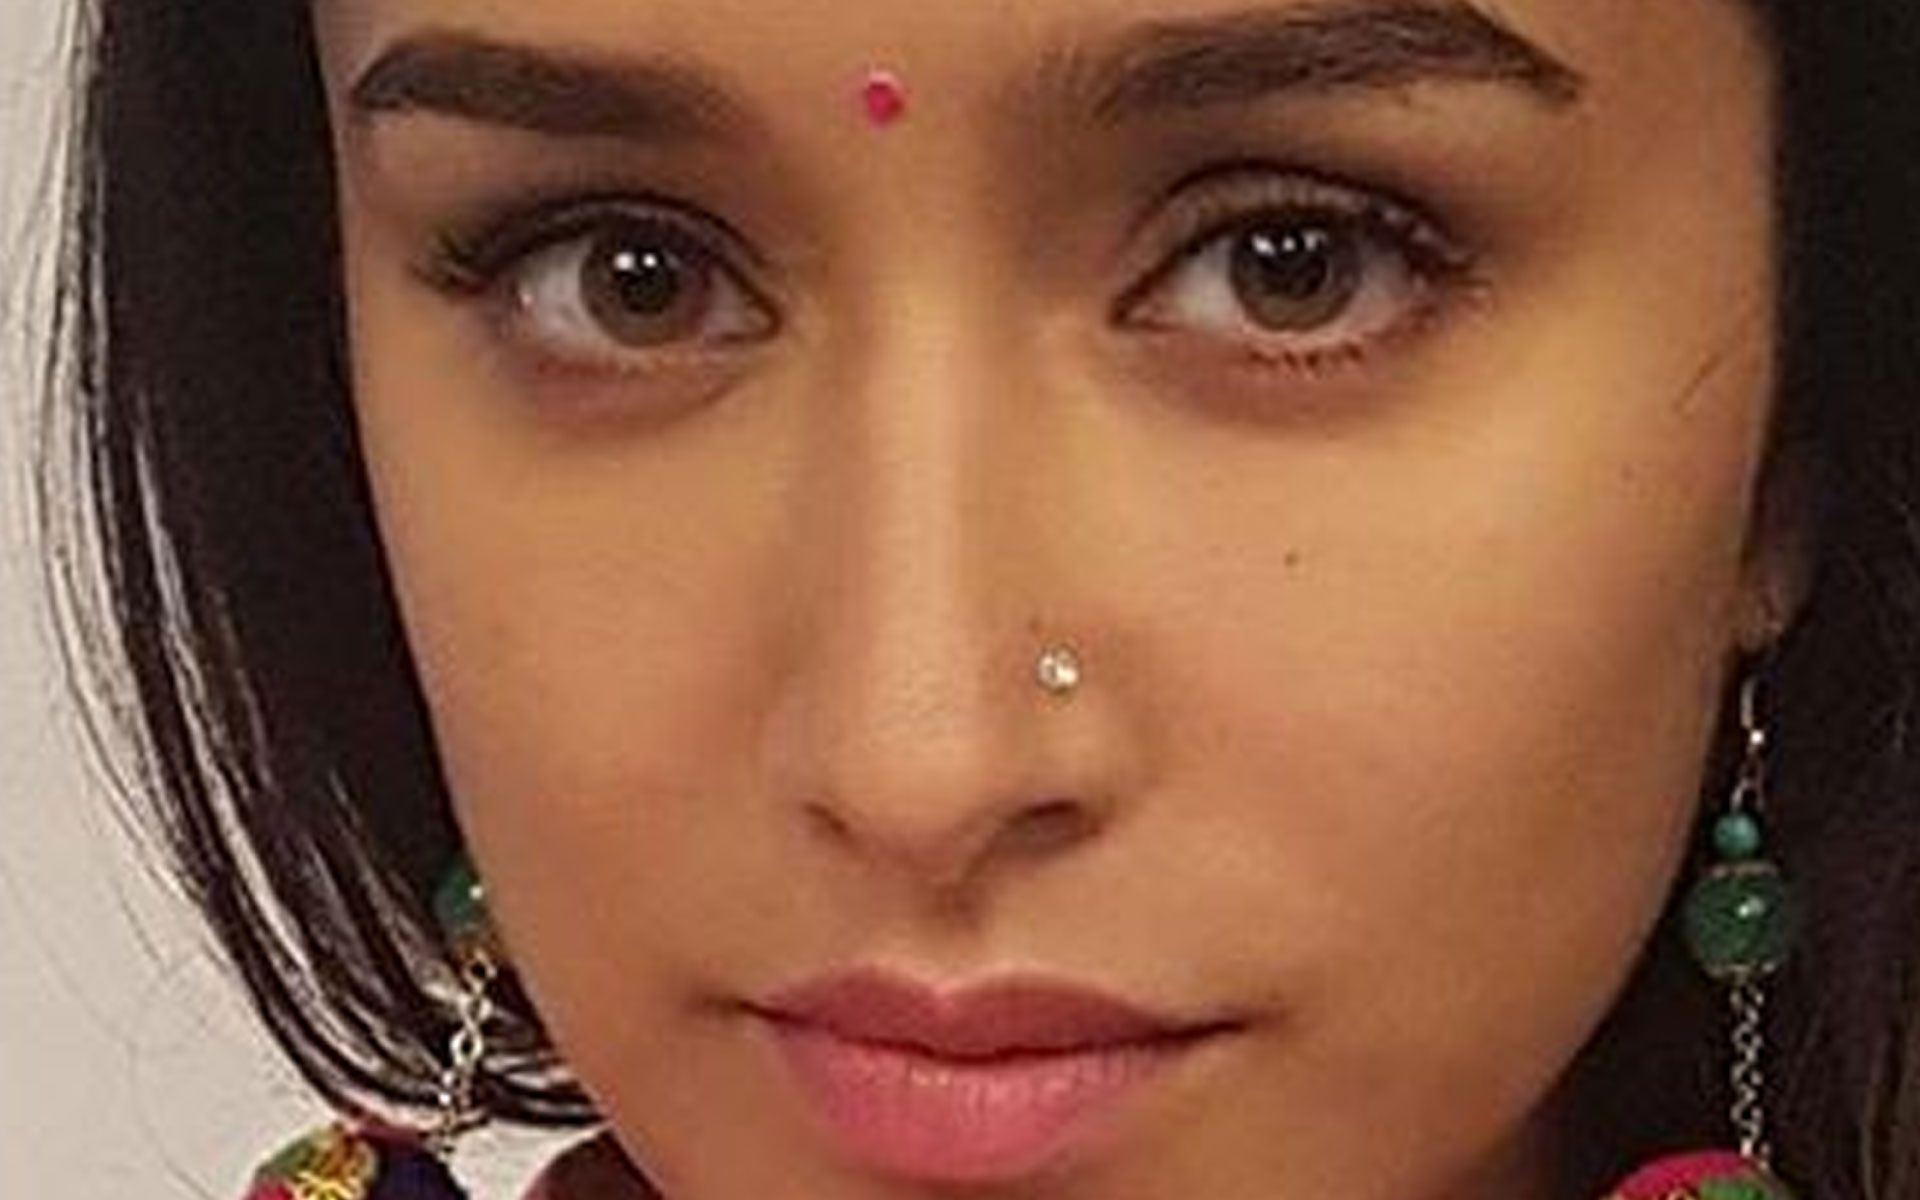 In Picture: Shraddha Kapoor's look in 'Batti Gul Meter Chalu